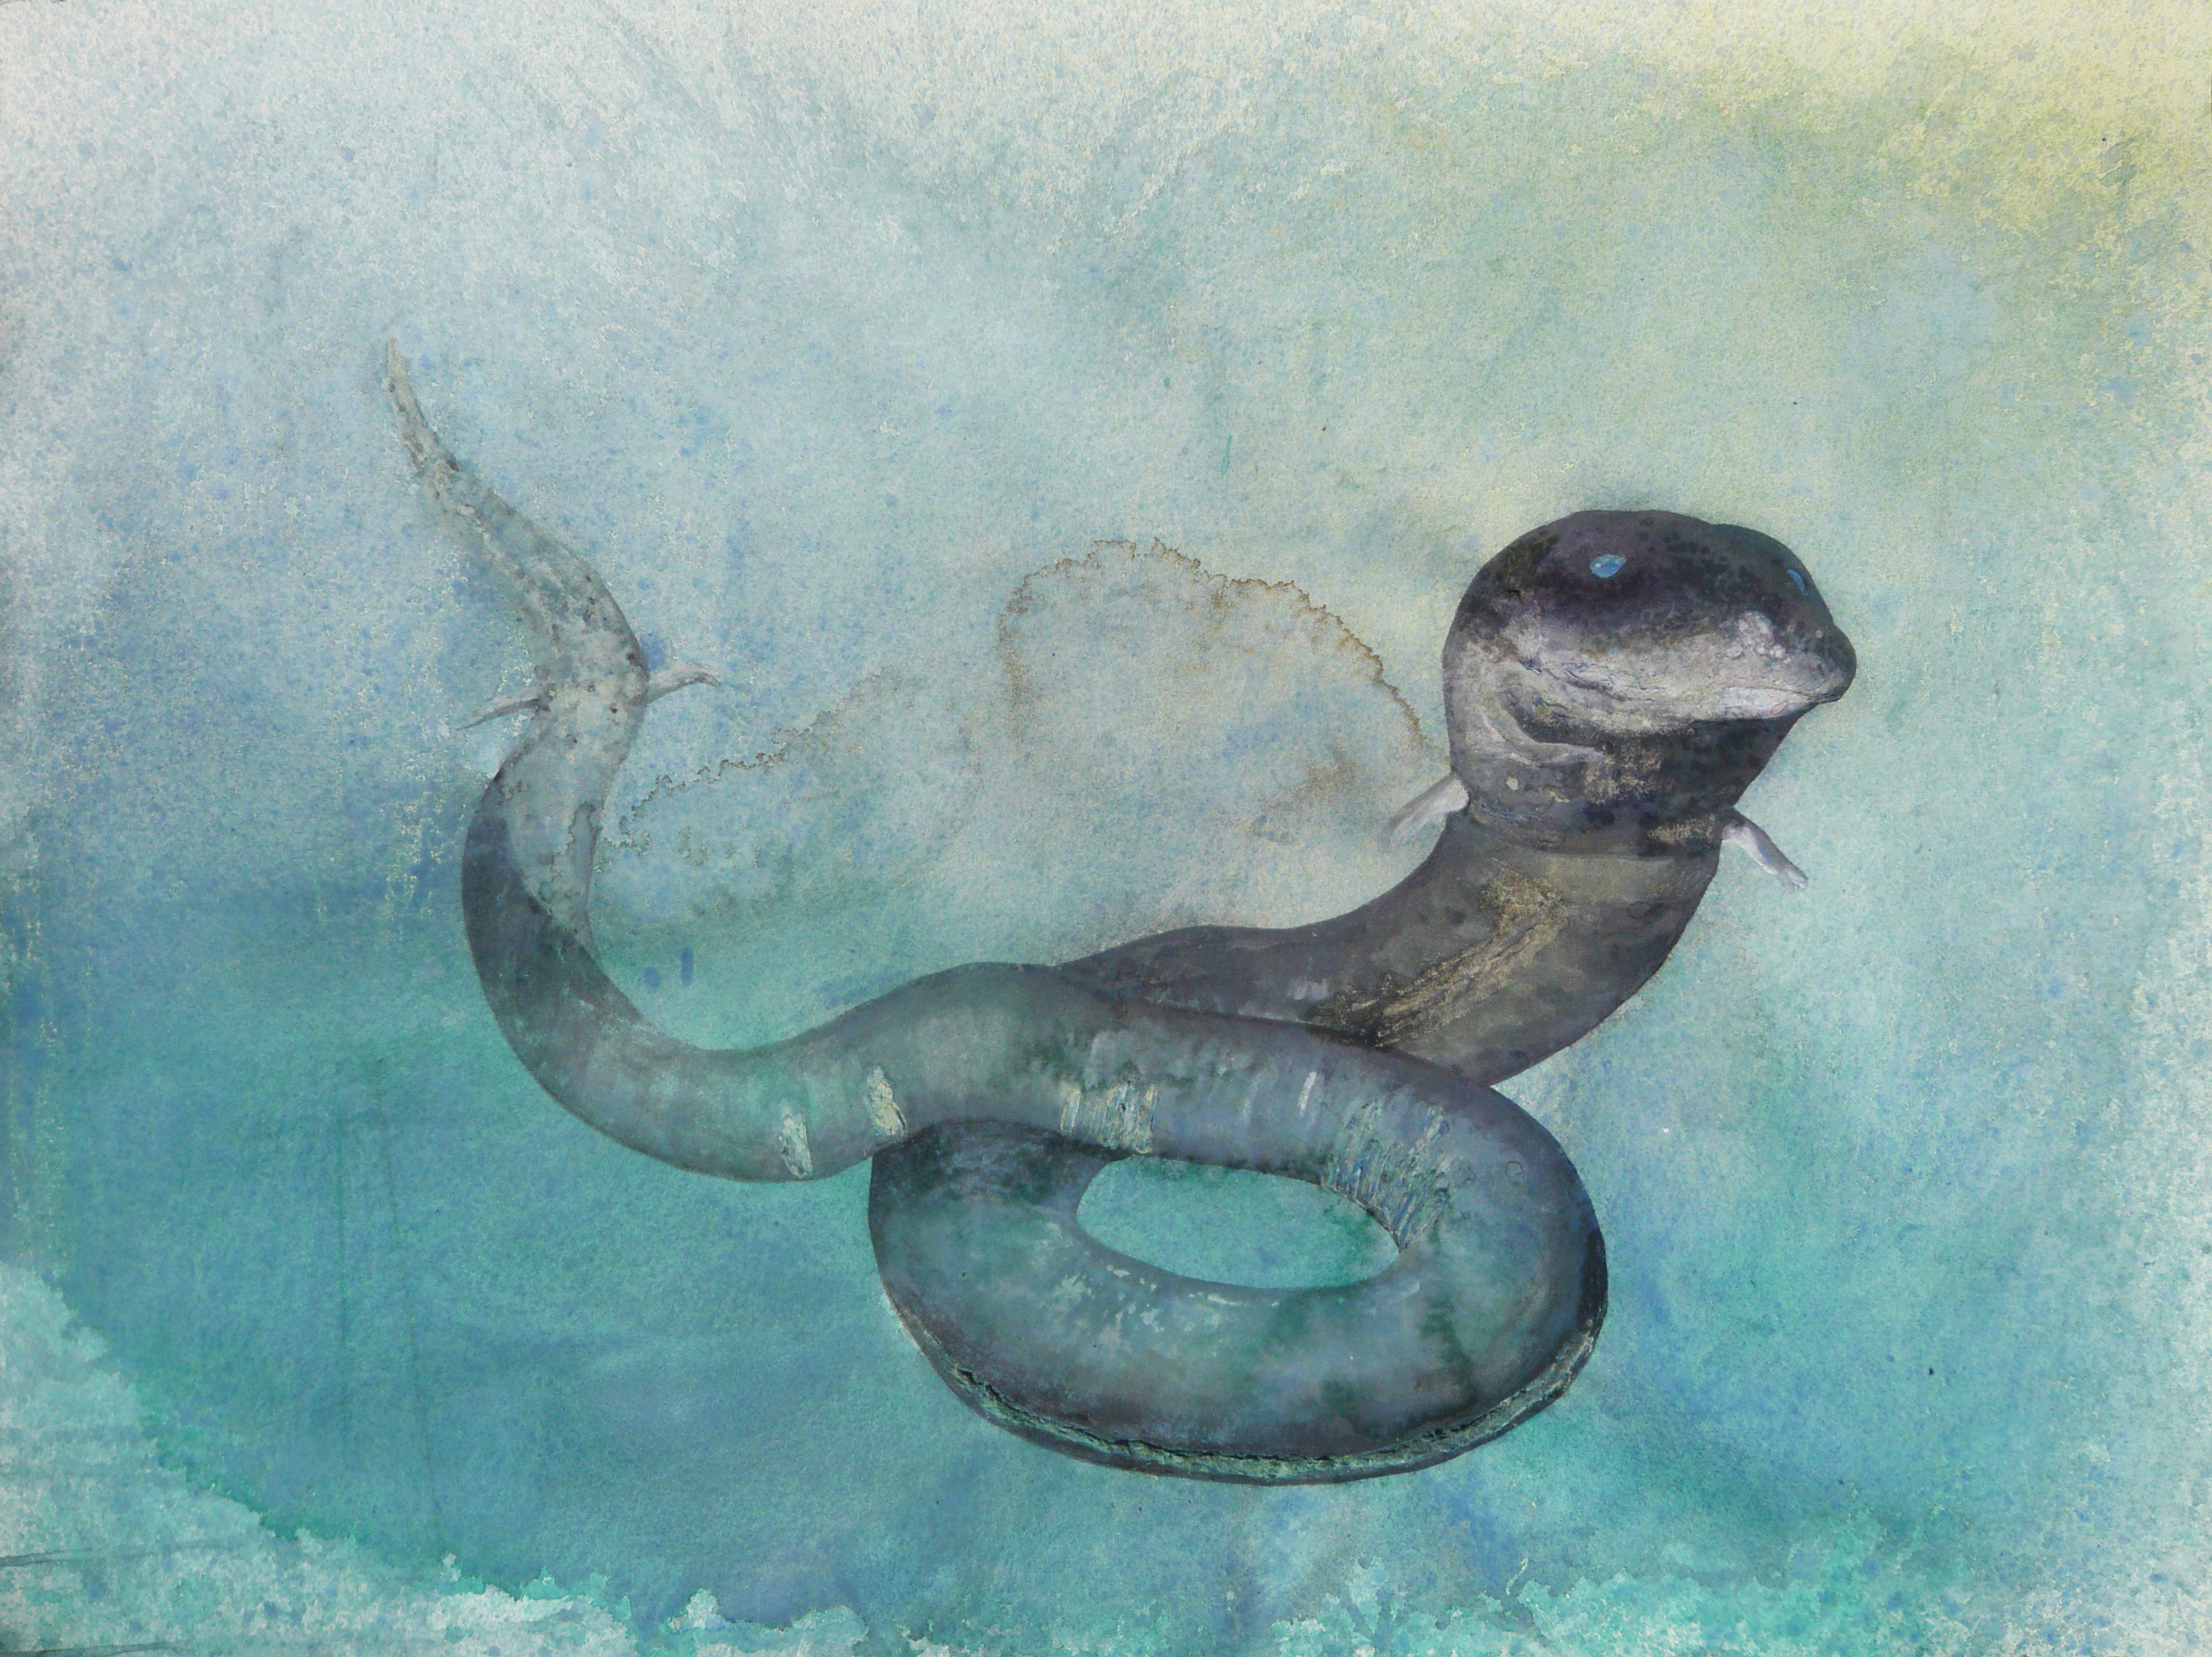 The previously commissioned portrait of John's amphiuma Chrissy.